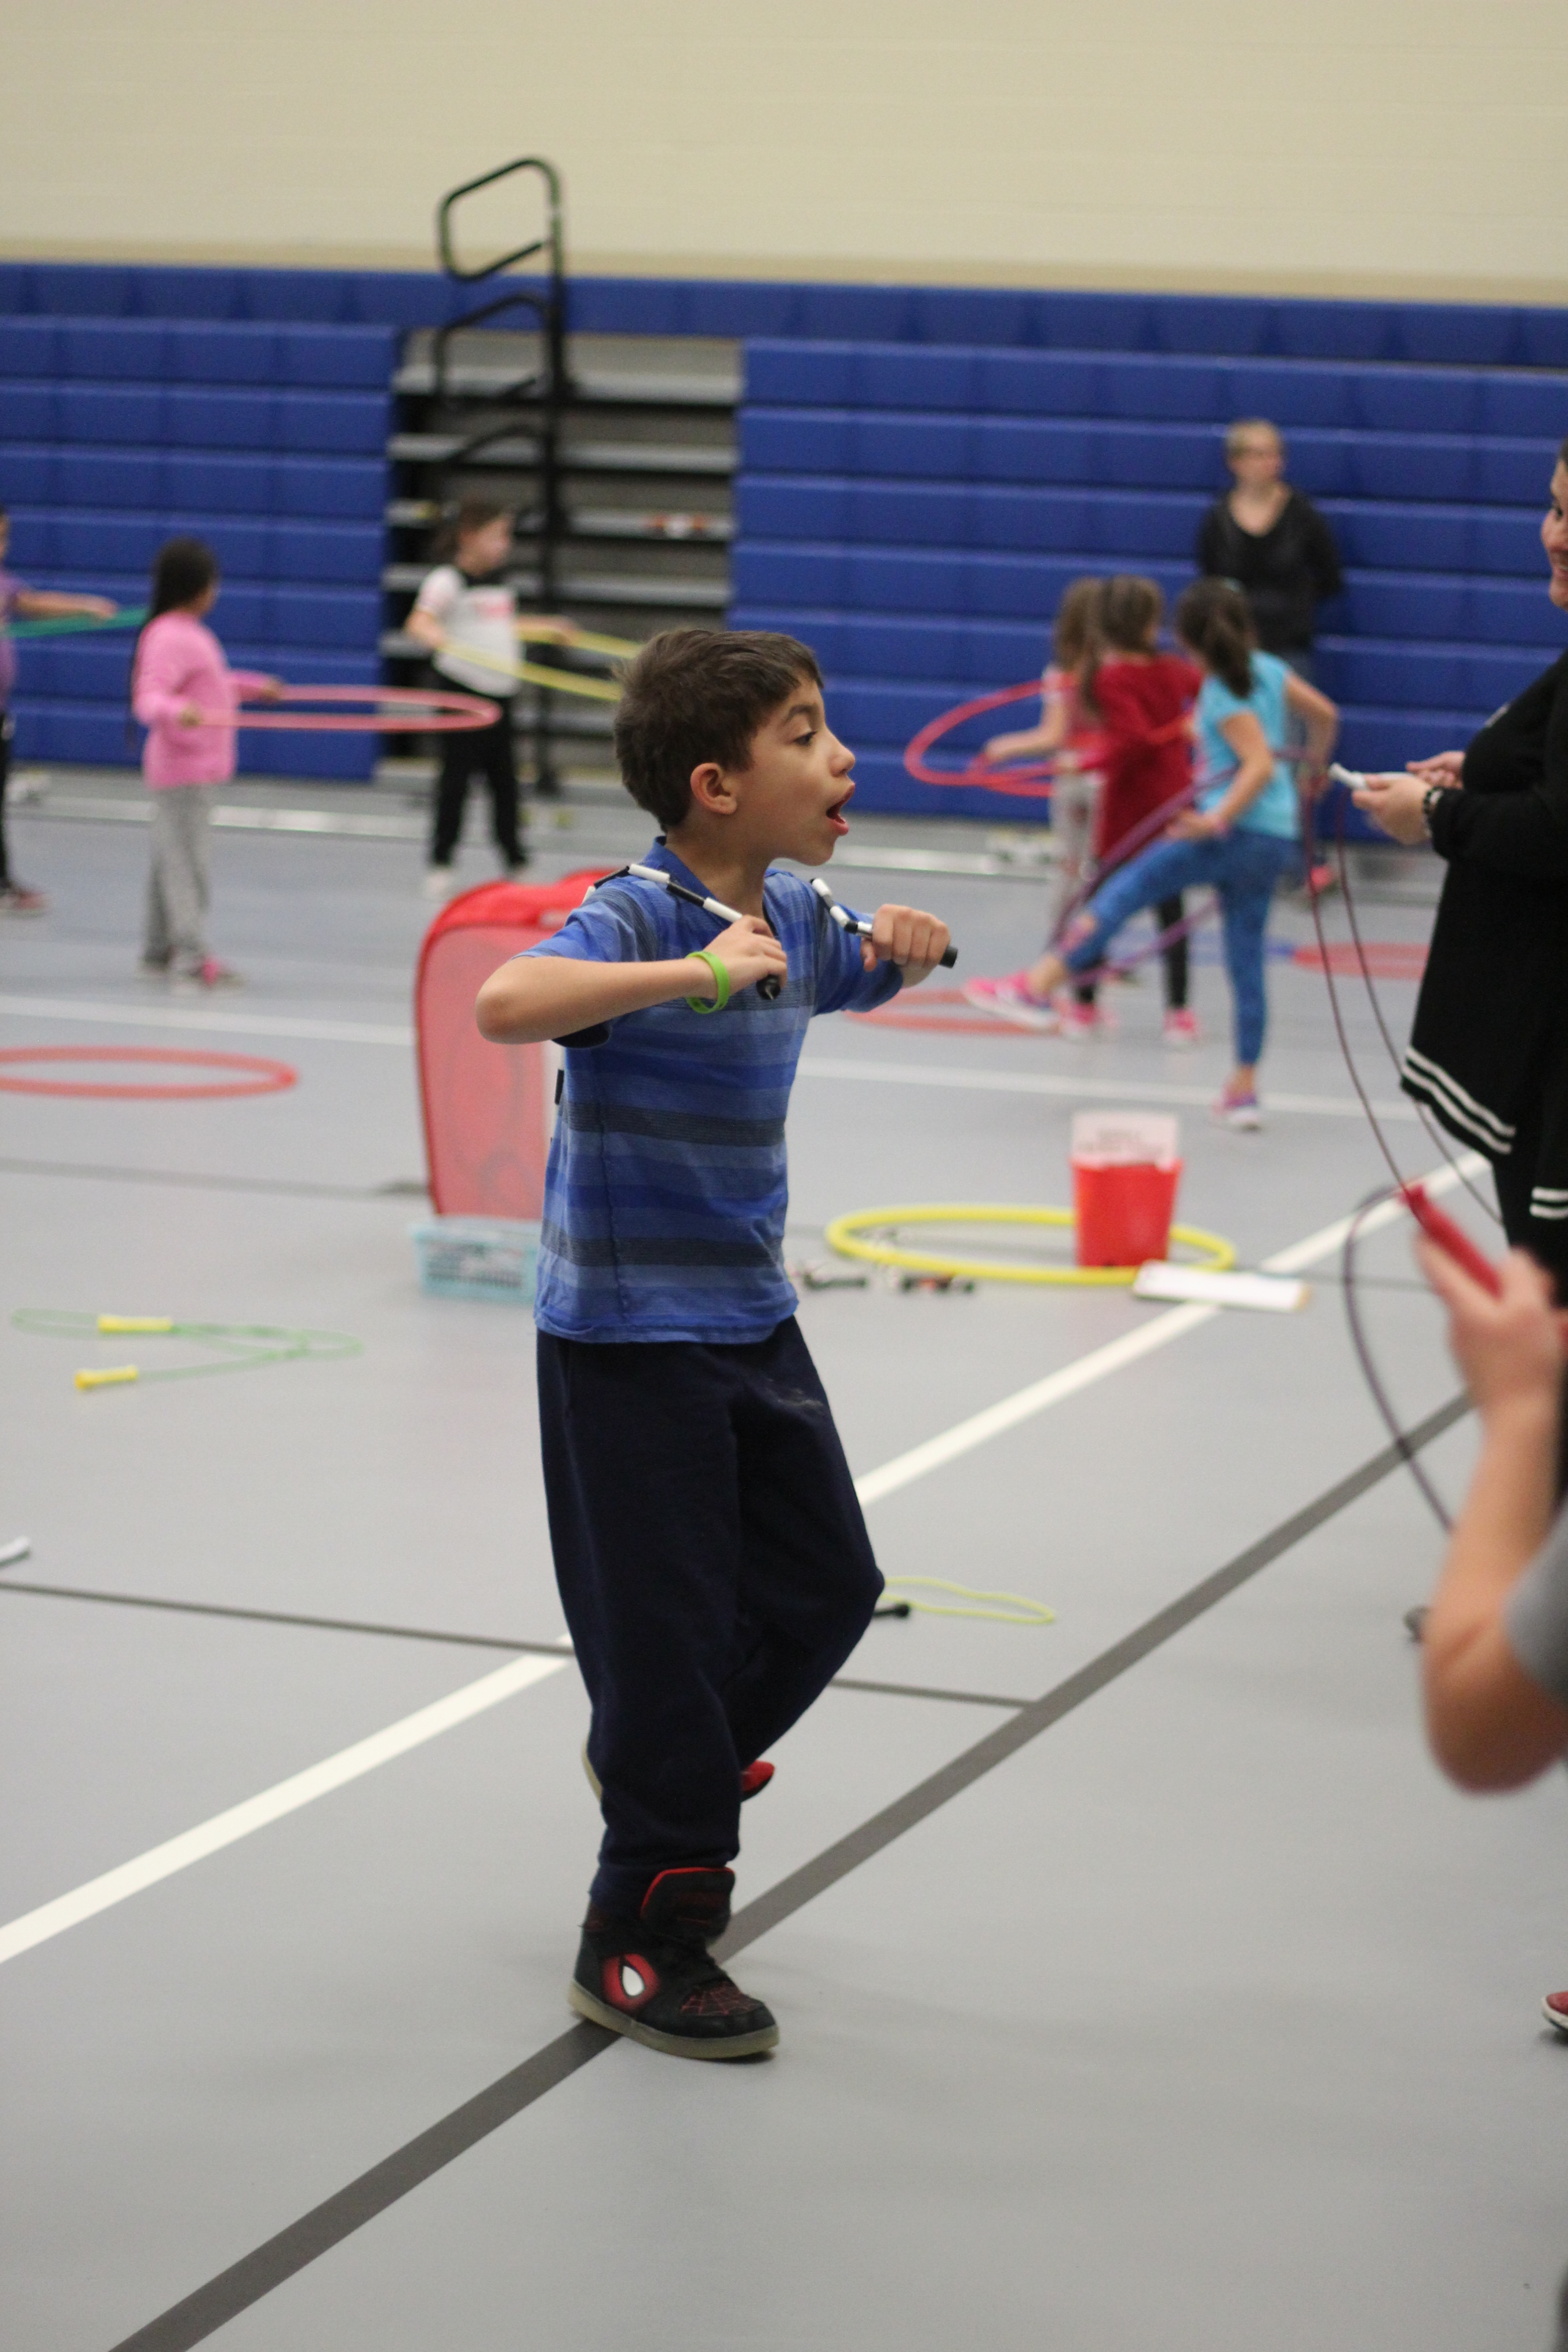 A student jump roping